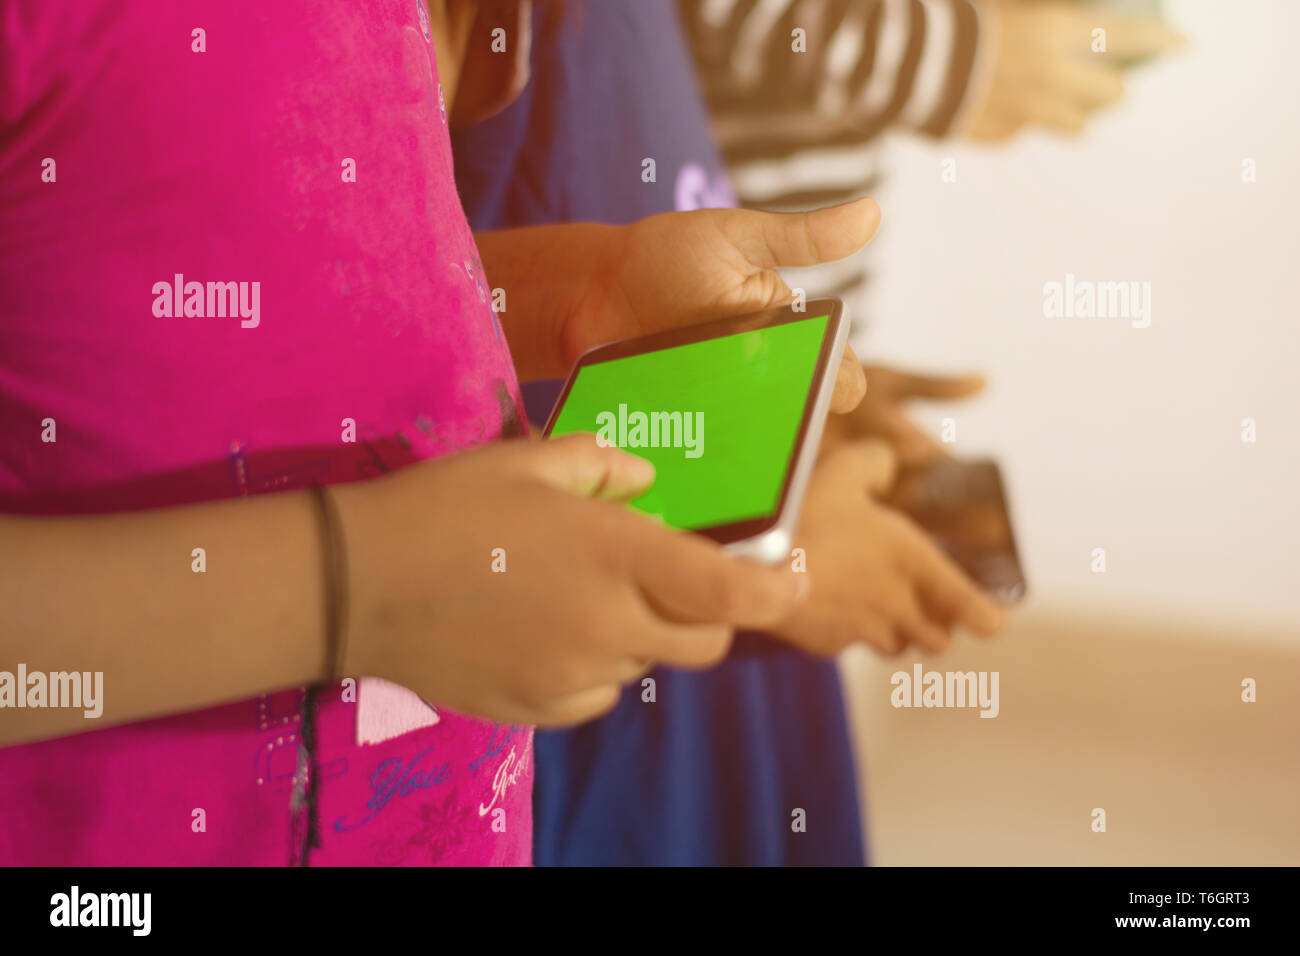 Social media addiction, Closeup of kids hand using the smartphone with greenscreen. - Stock Image